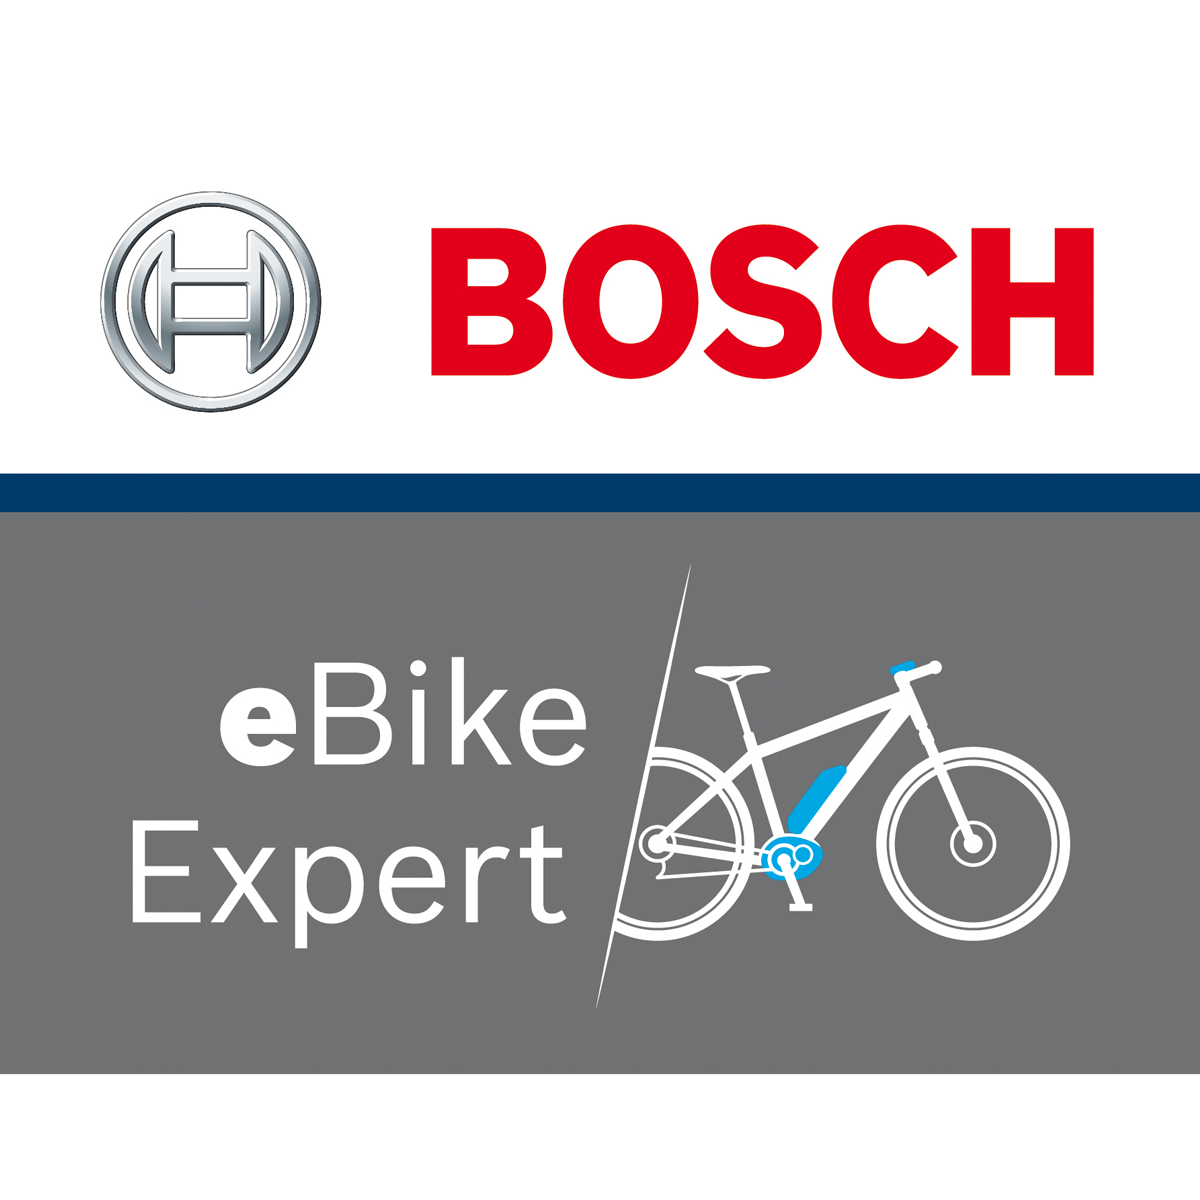 eBike_Experts_Logo_1200x120